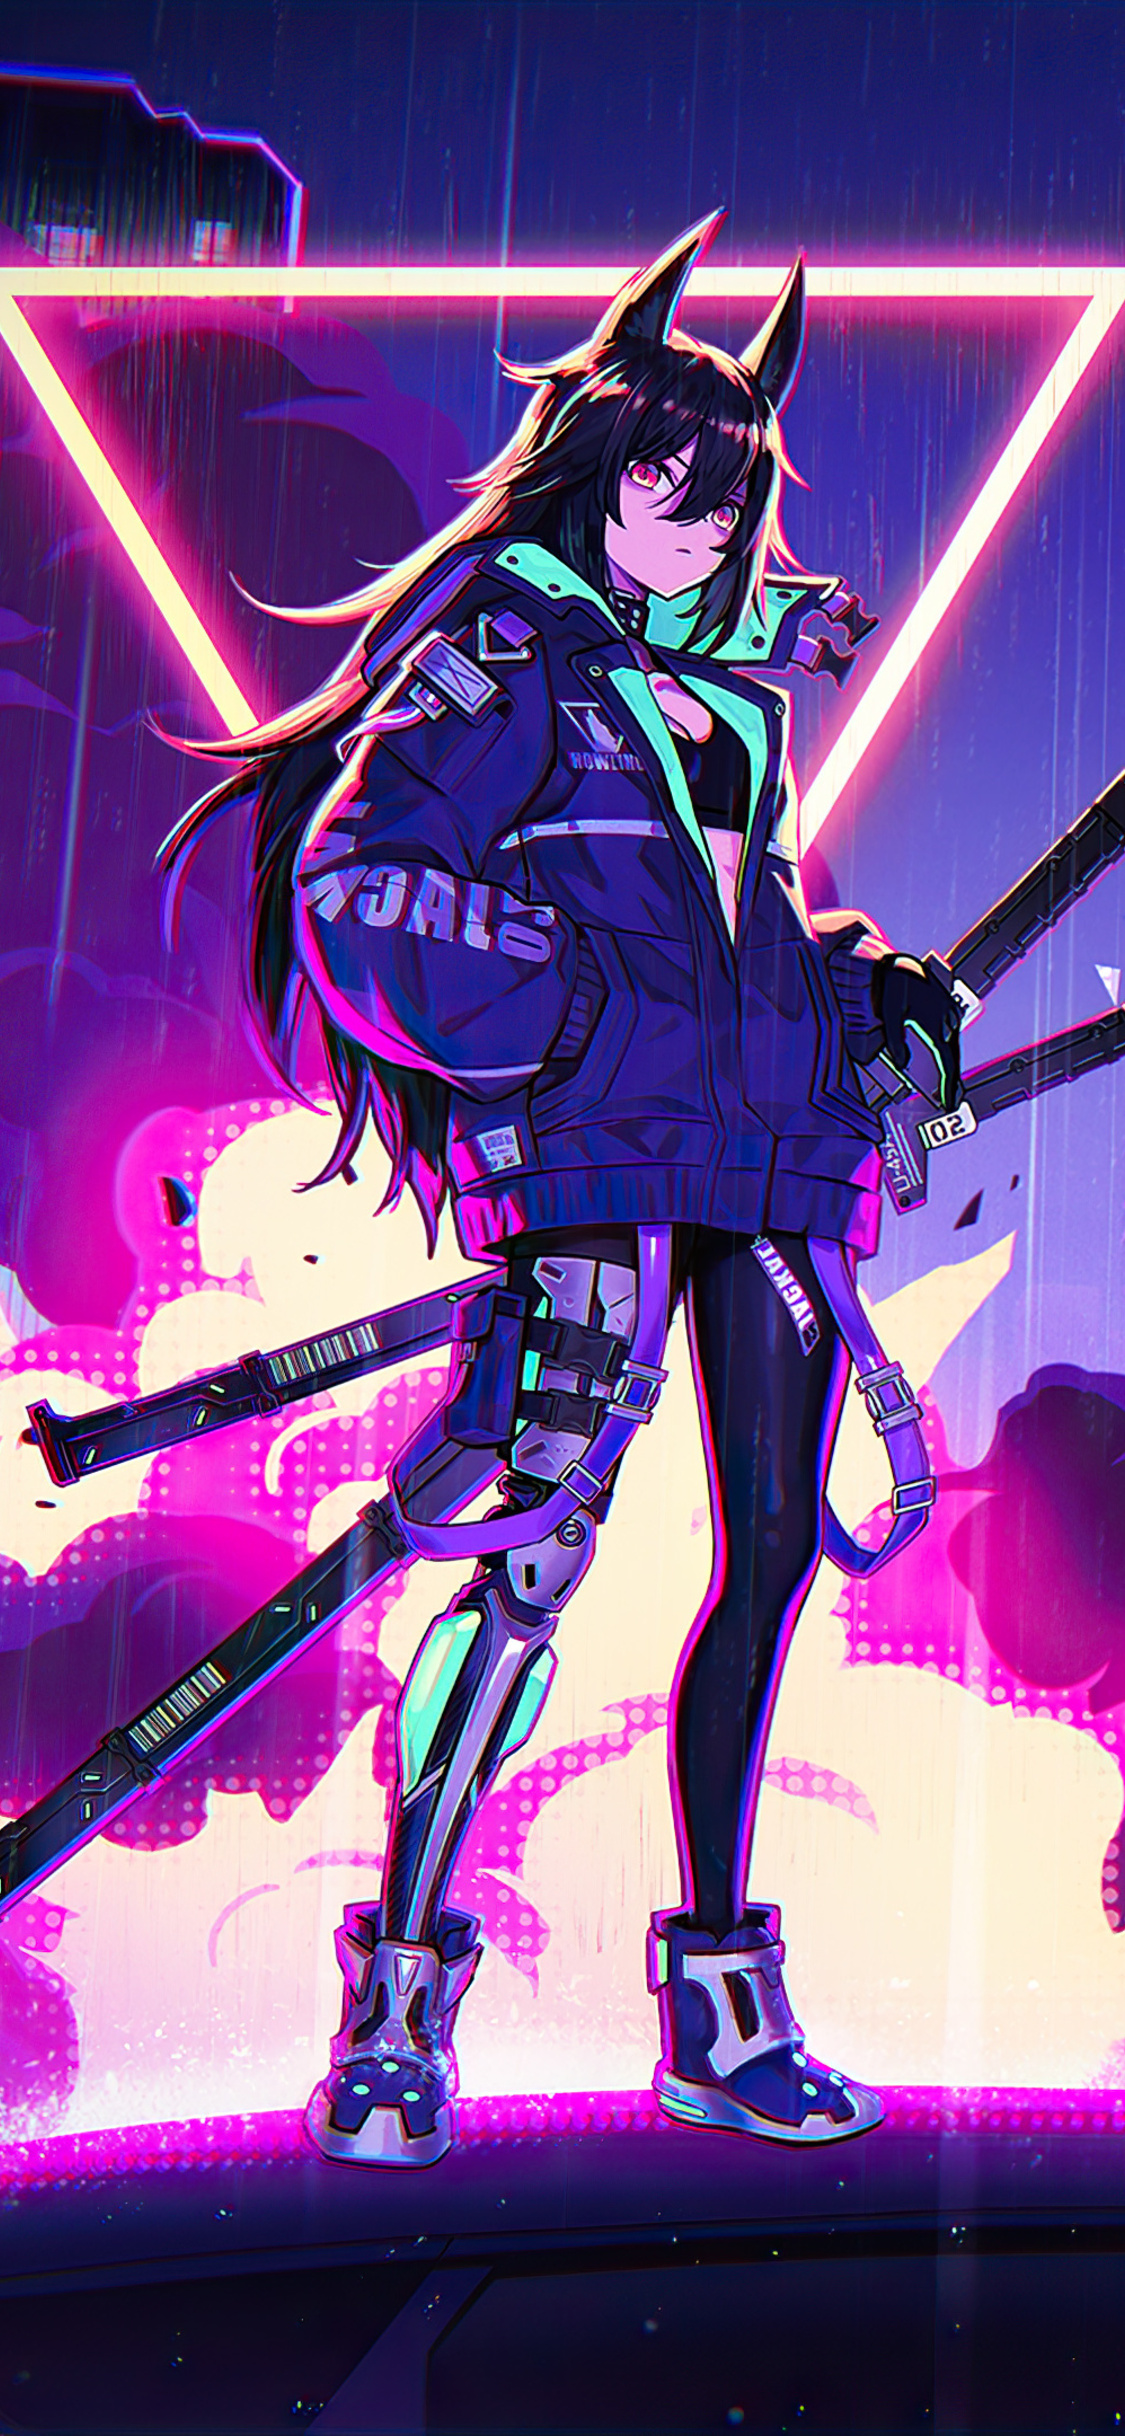 1125x2436 Katana Anime Girl Neon 4k Iphone Xs Iphone 10 Iphone X Hd 4k Wallpapers Images Backgrounds Photos And Pictures